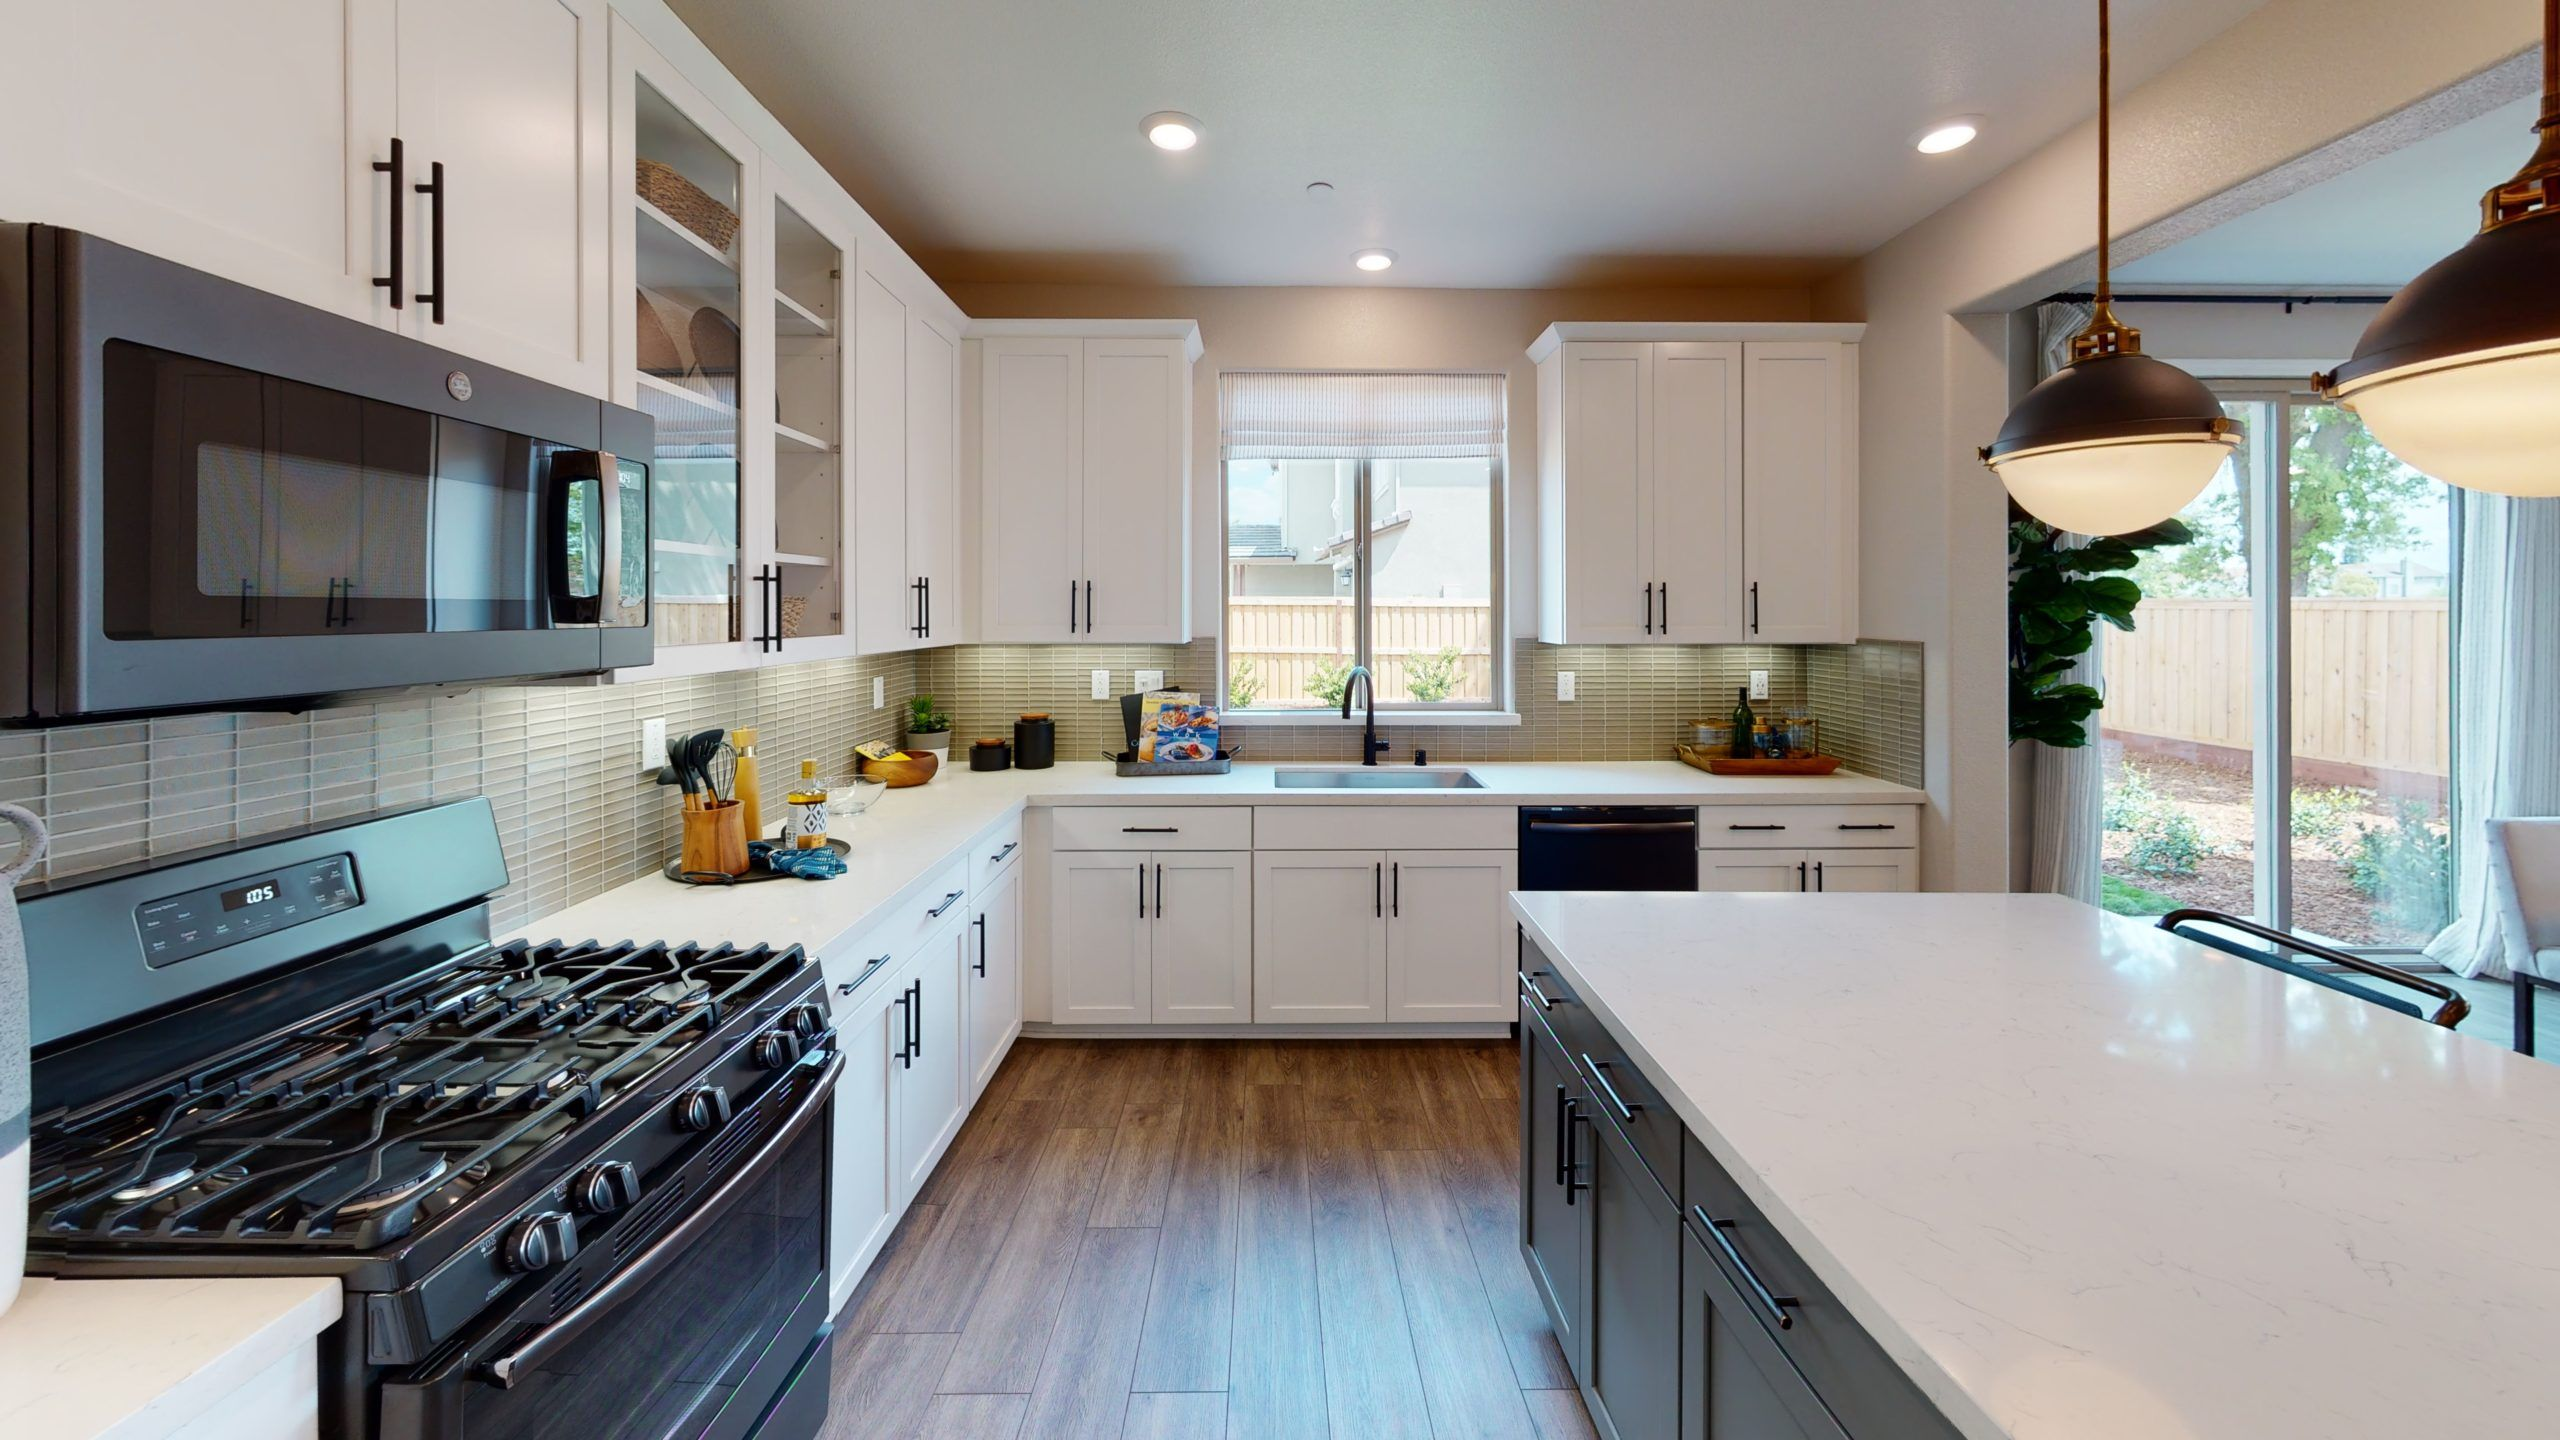 Kitchen featured in the Residence 3 By Next New Homes Group in Sacramento, CA